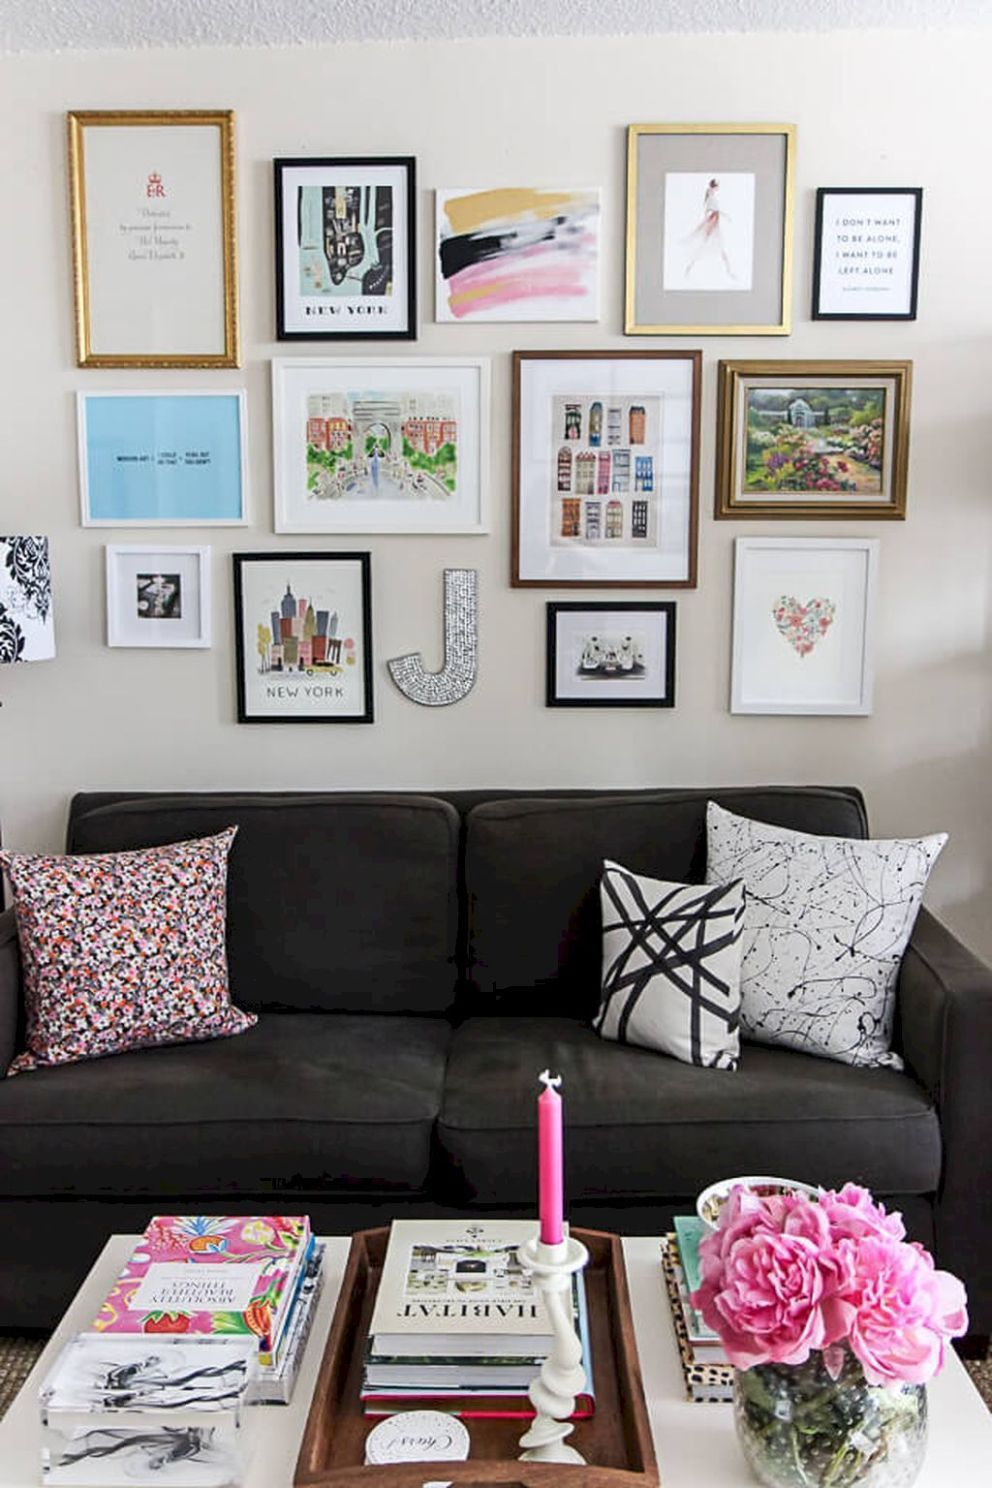 55 Cute Diy College Apartment Decor Ideas On A Budget ...